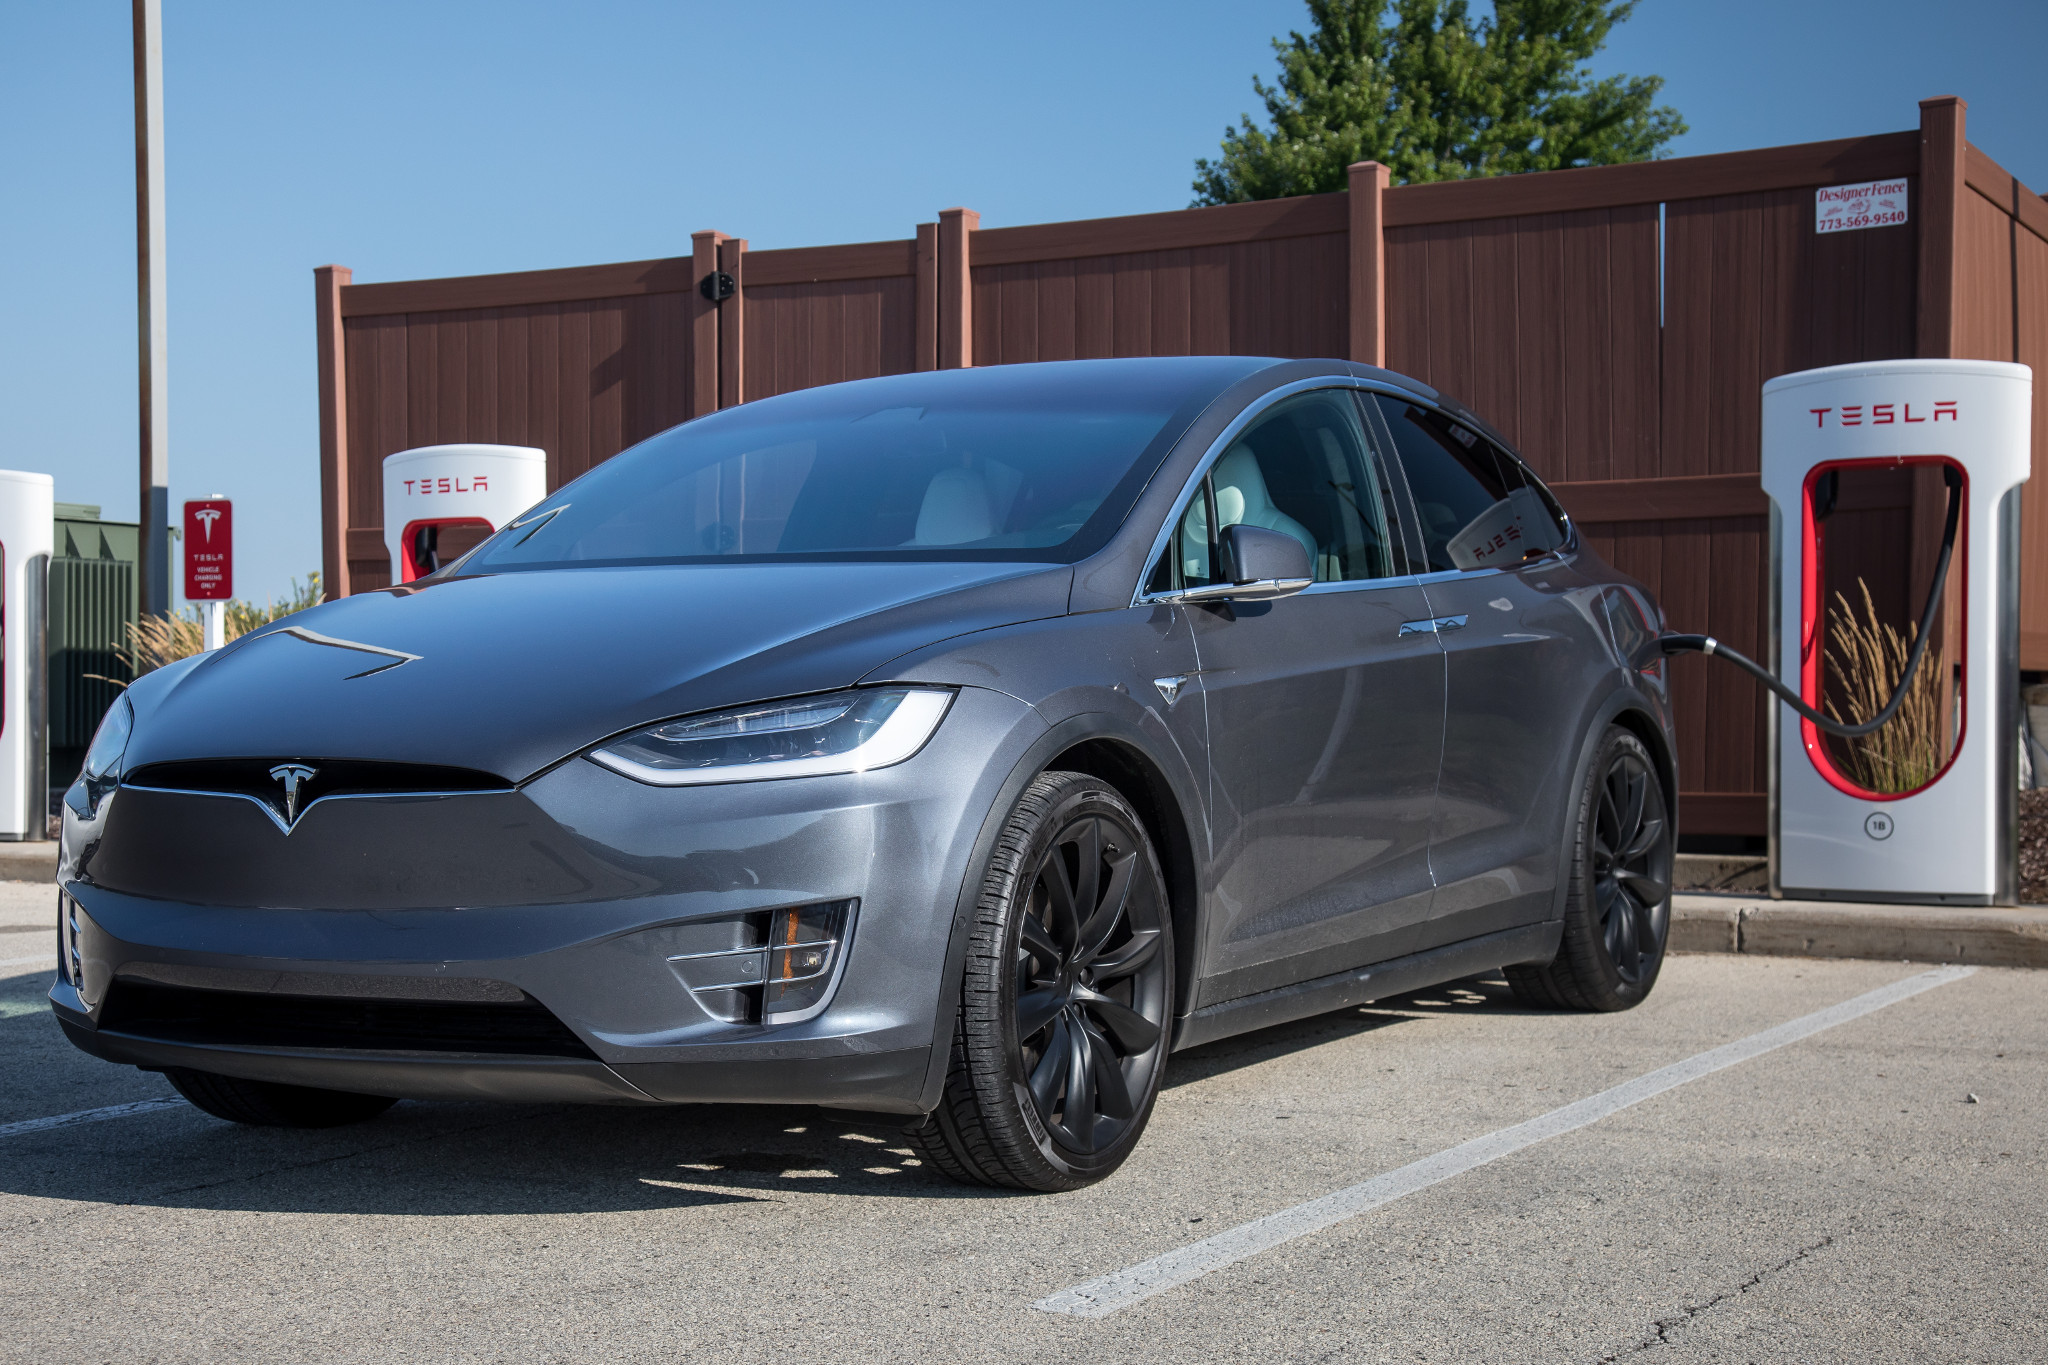 The Week in Tesla News: Unintended Acceleration Alleged, Michigan Sales Settlement Nigh and Cybertruck T-Shirts